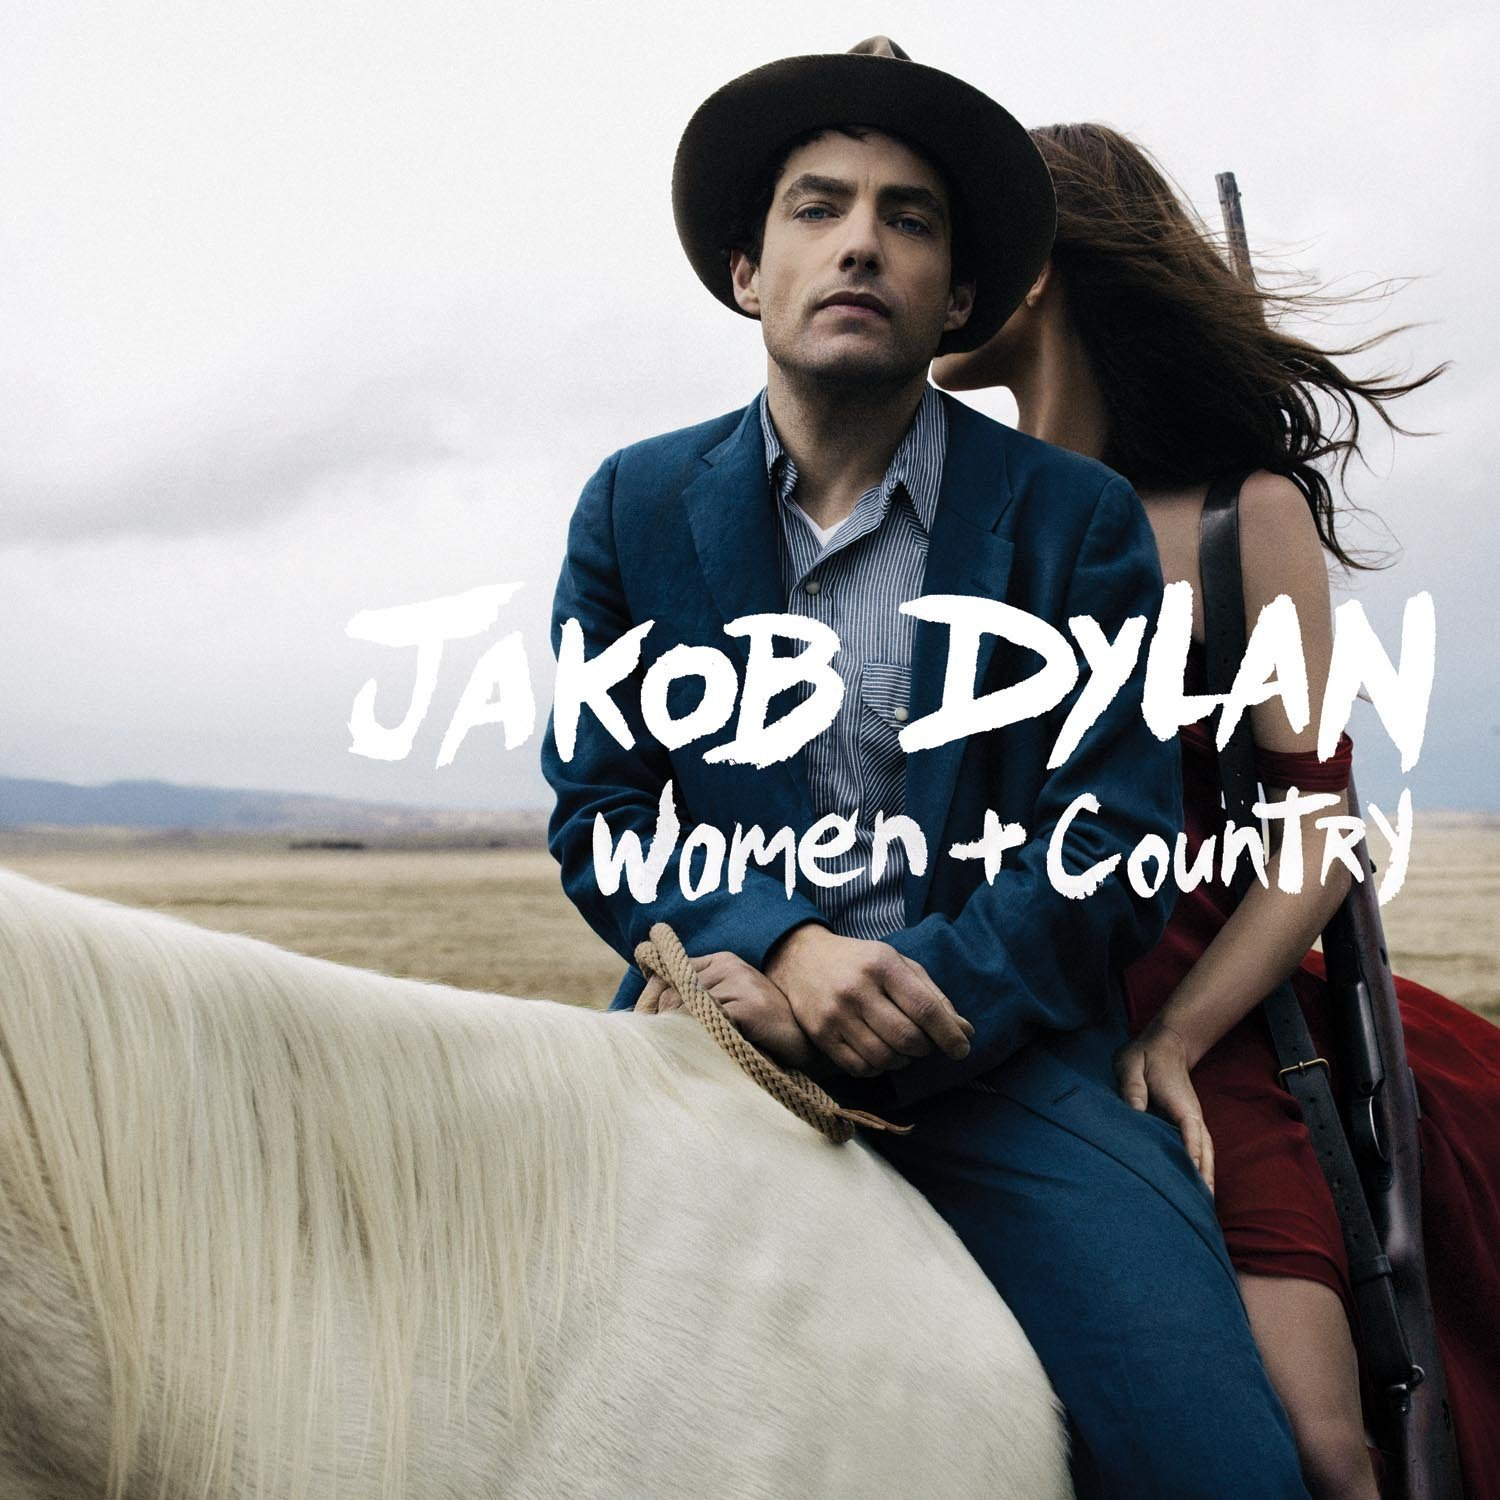 Jakob Dylan, Women and Country